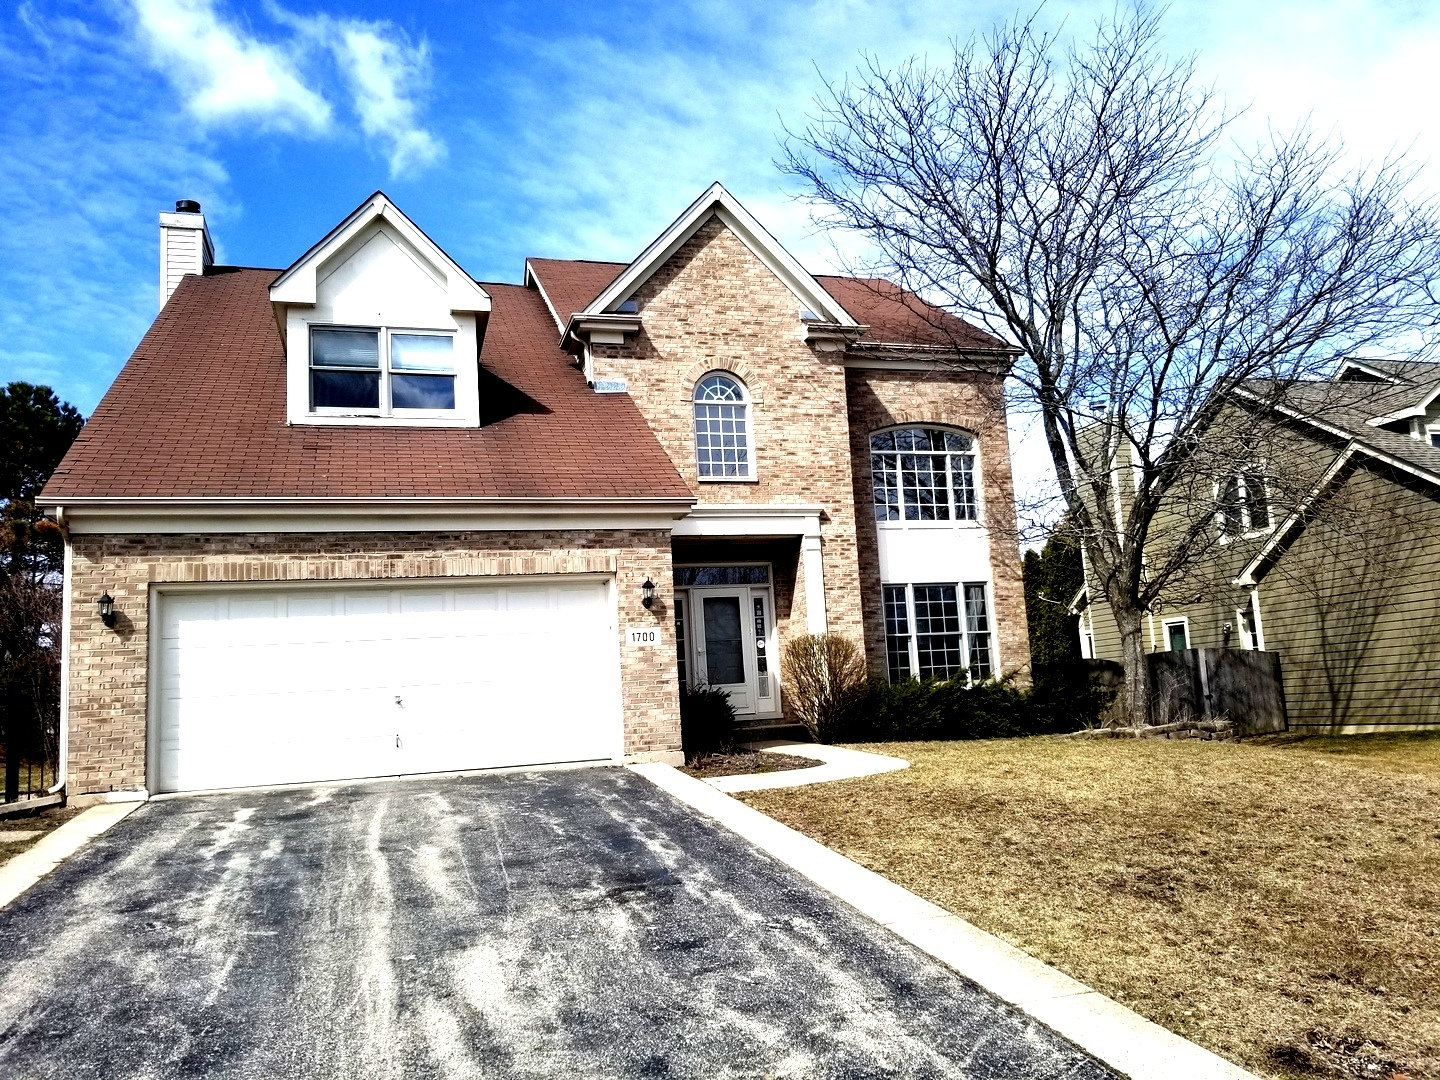 1700 Ambria Court, Mundelein in Lake County, IL 60060 Home for Sale